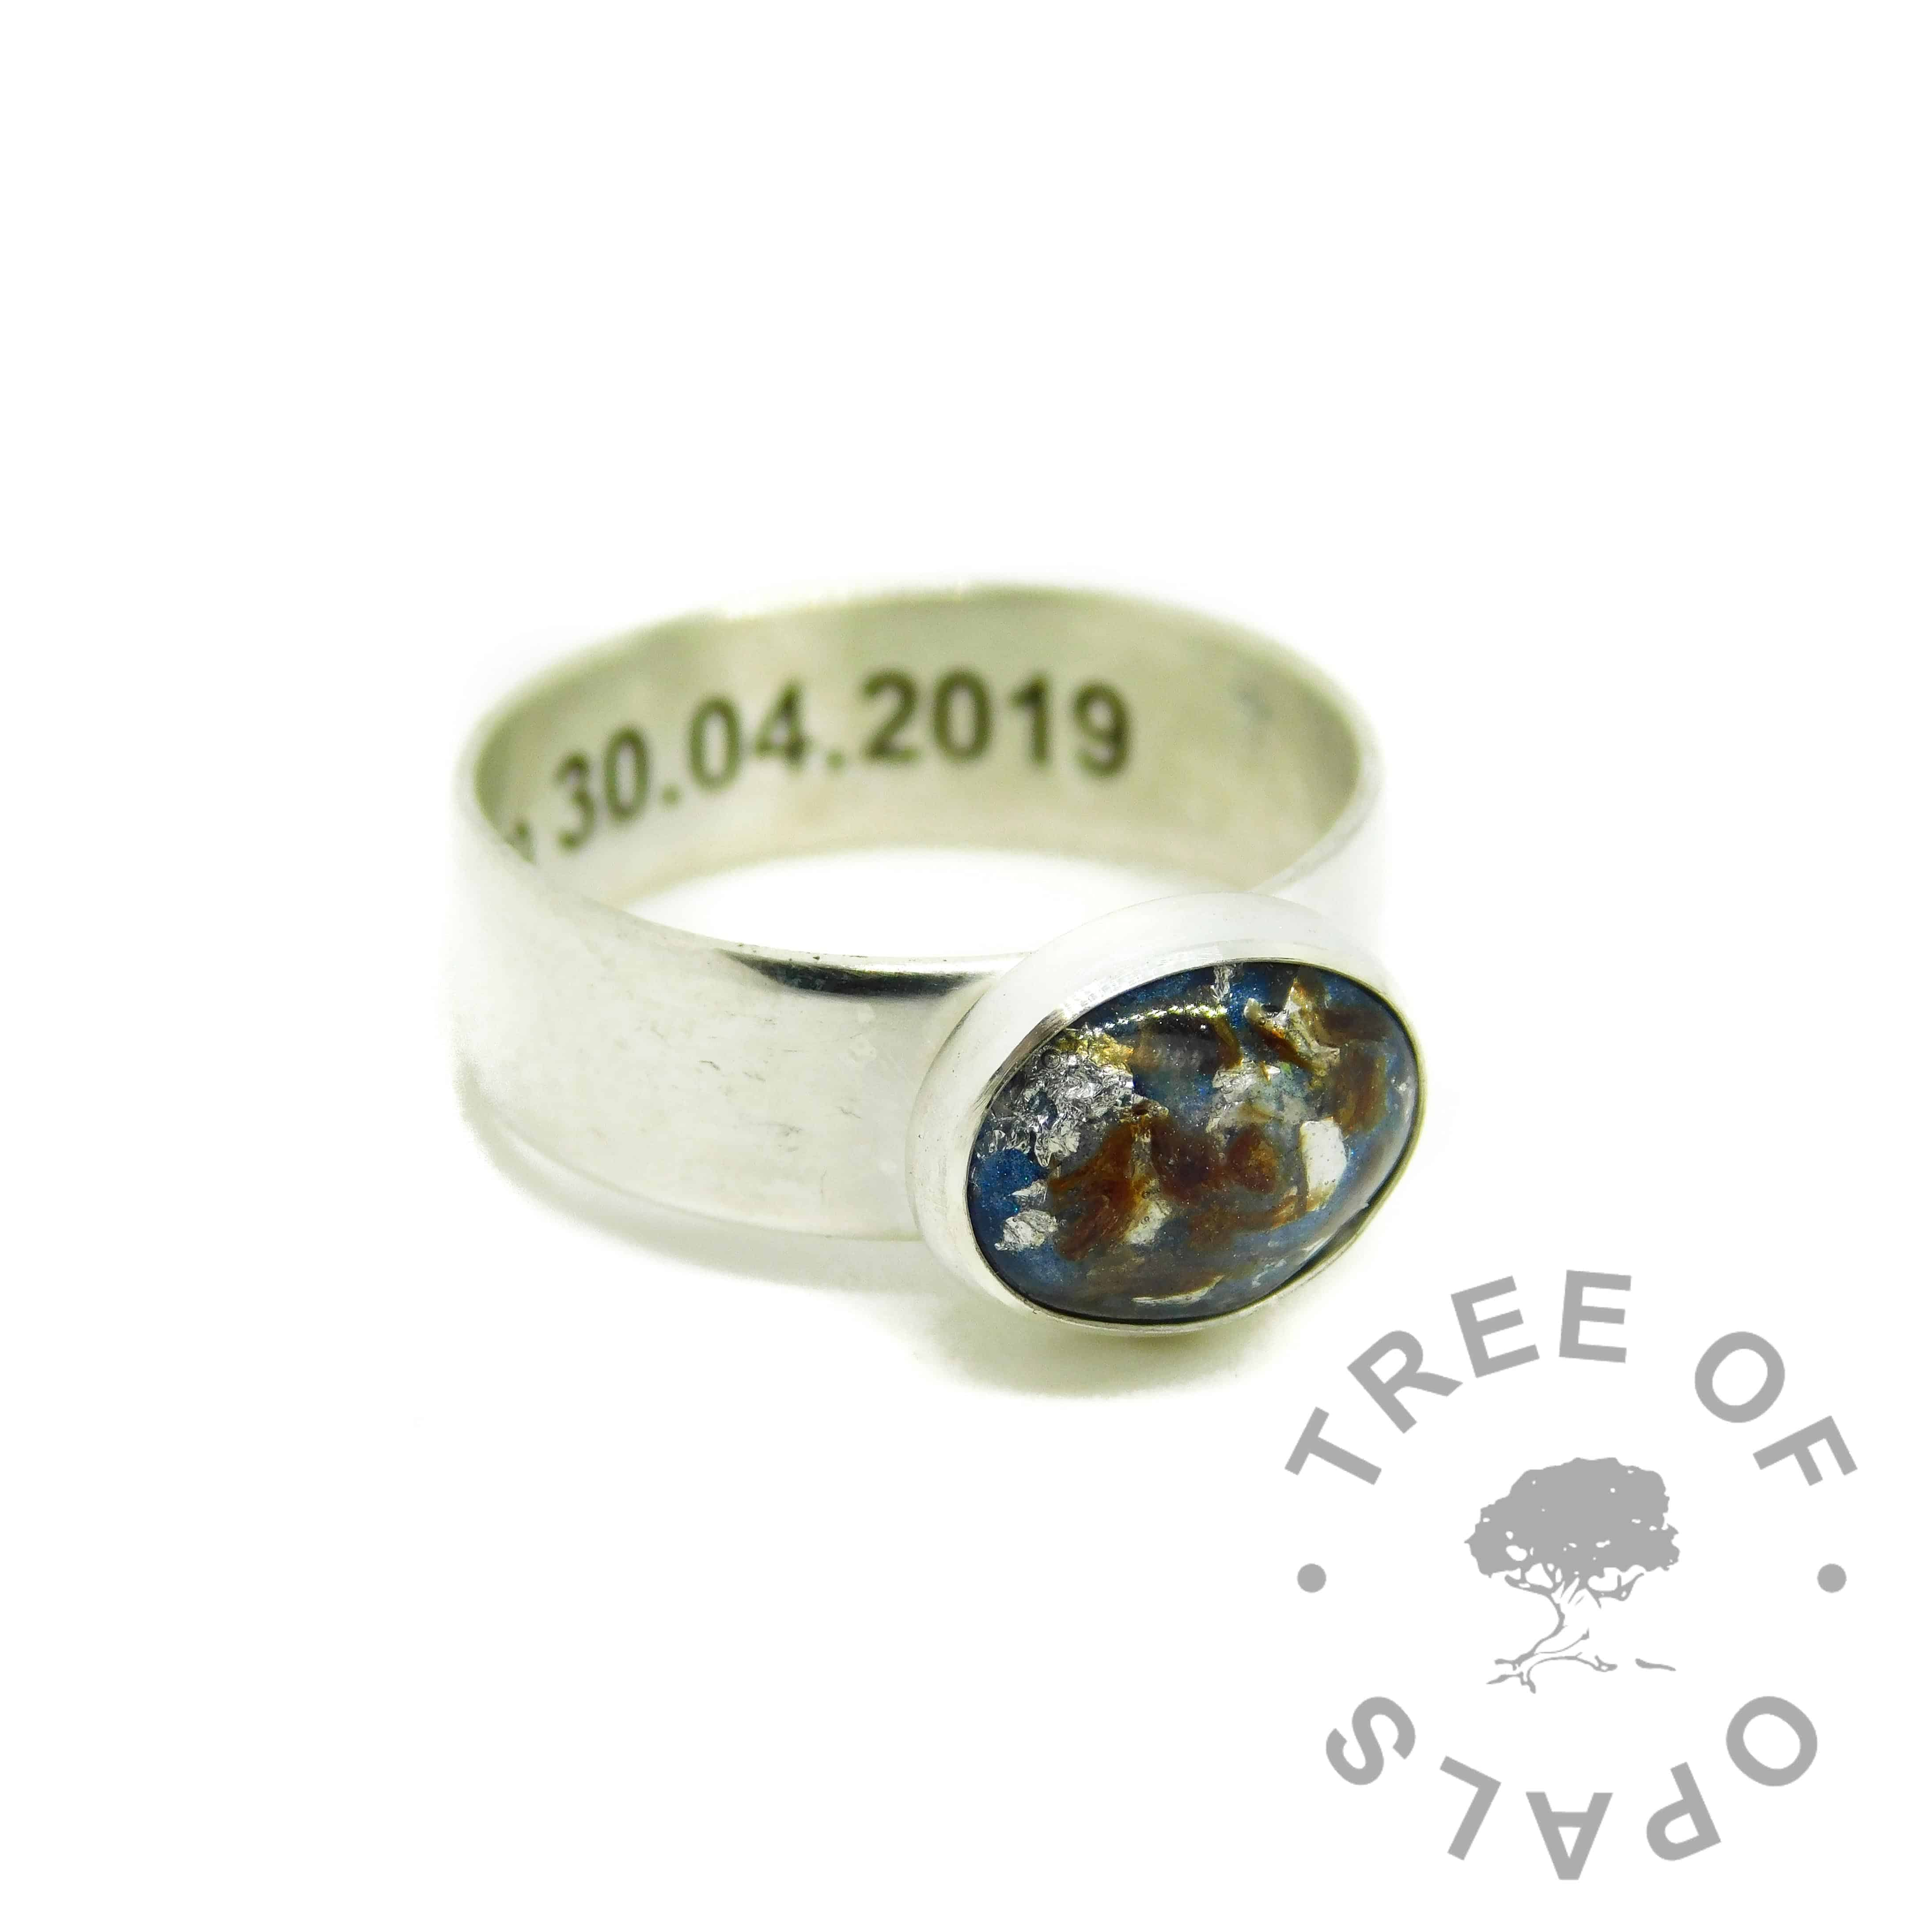 umbilical cord ring aegean blue resin sparkle mix and silver leaf, 6mm wide shiny engraved band